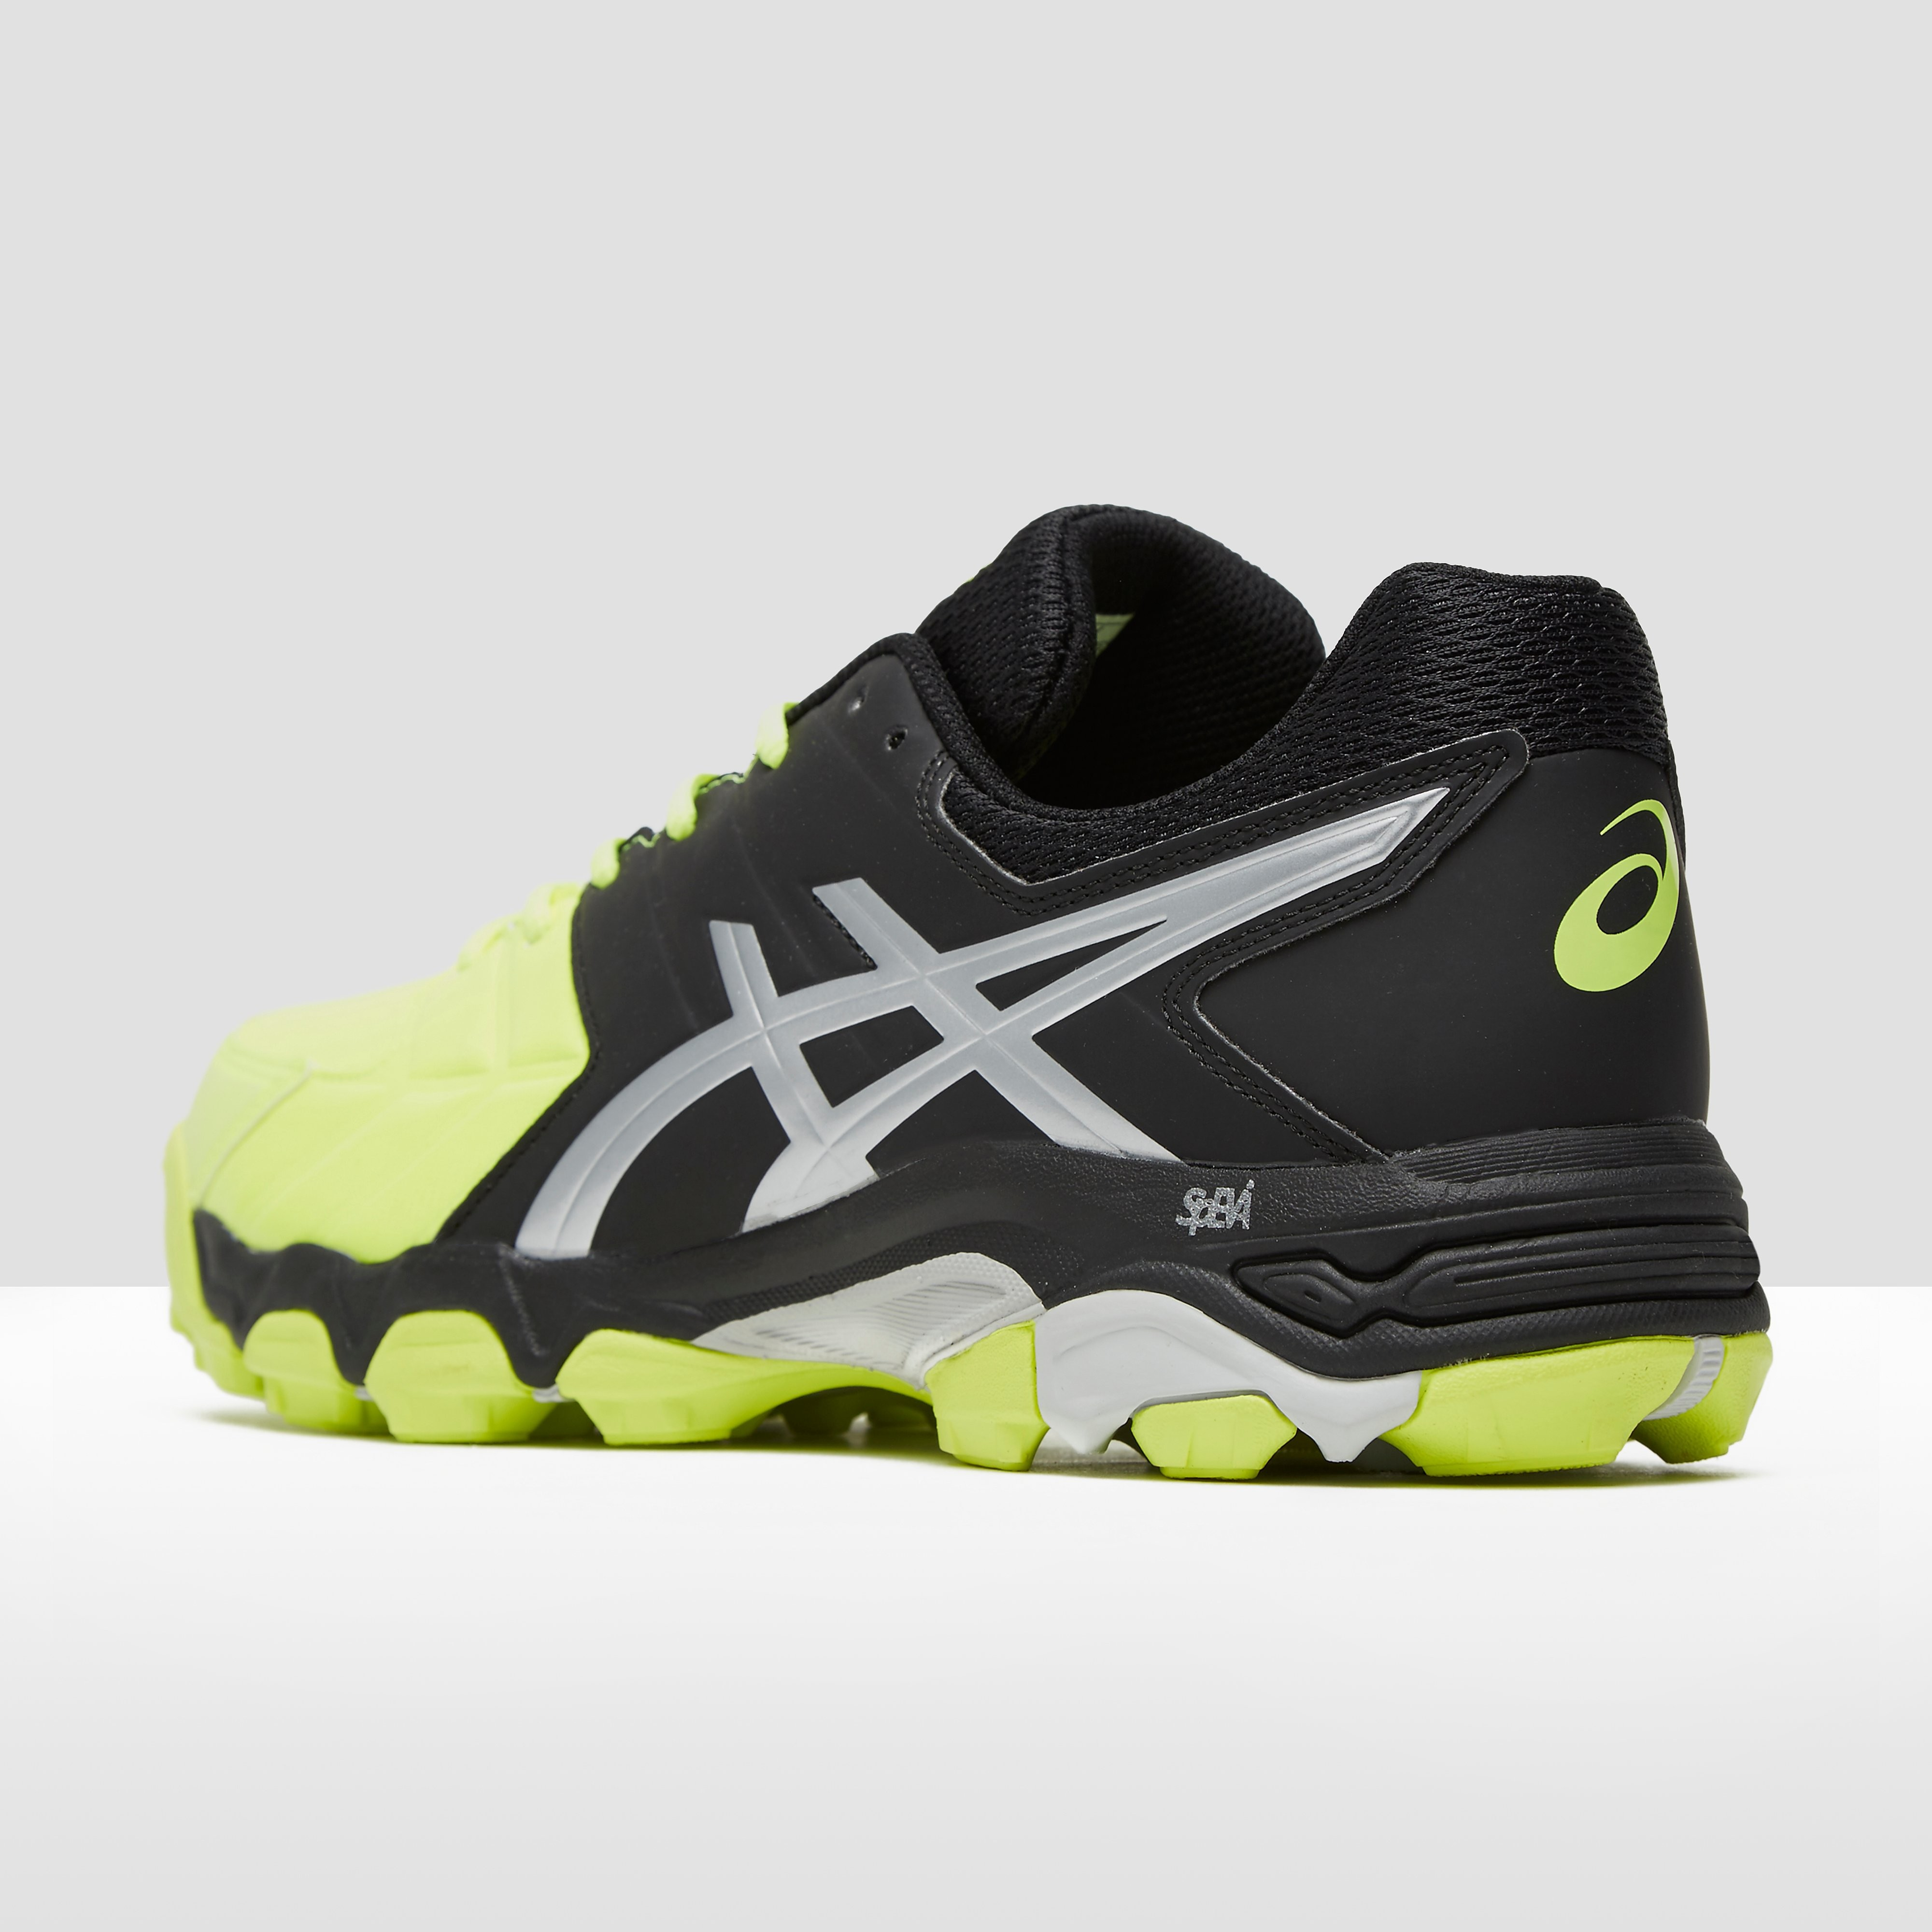 ASICS Blackheath 6 Men's Hockey Shoes